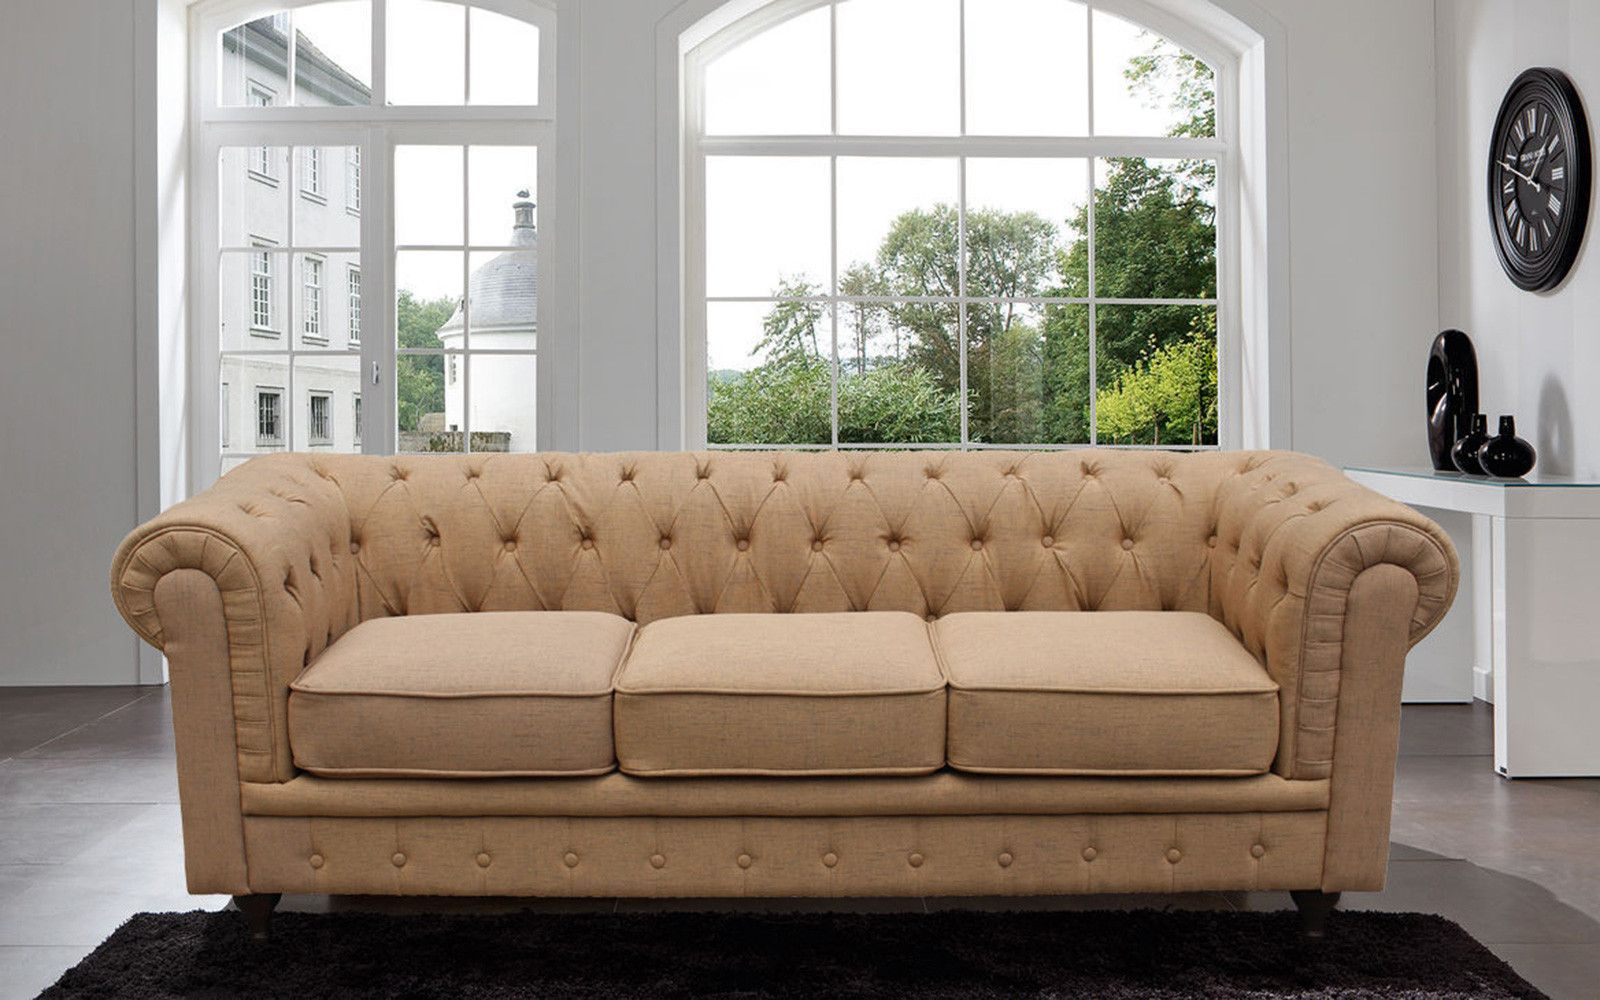 Antike Sofas Living Classic Scroll Arm Tufted Linen Fabric Chesterfield Large Sofa